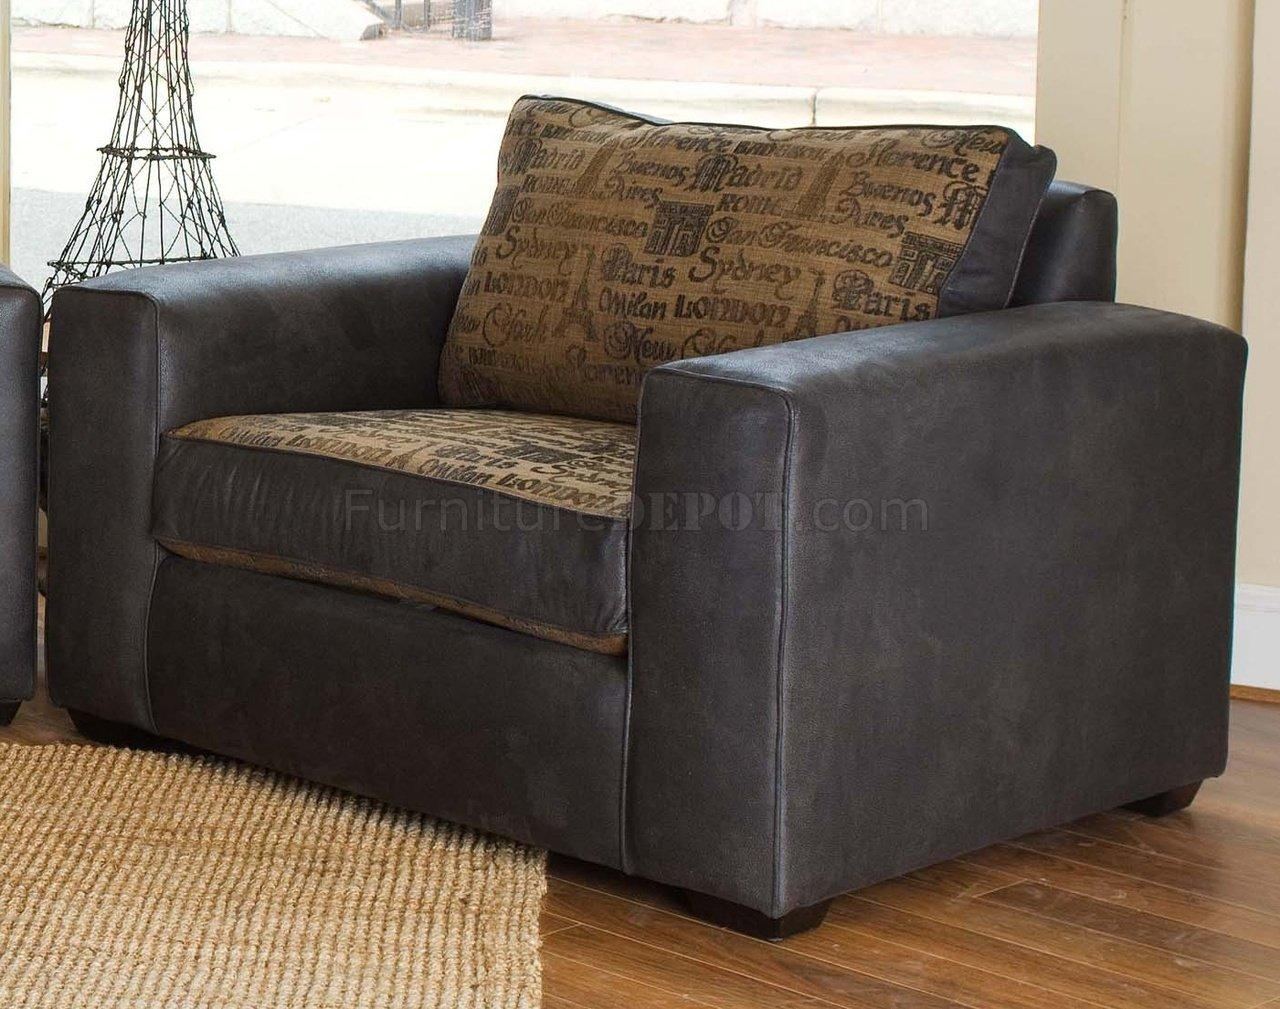 & Leather Modern Living Room Sofa & Large Chair Set Regarding Large Sofa Chairs (Image 1 of 20)